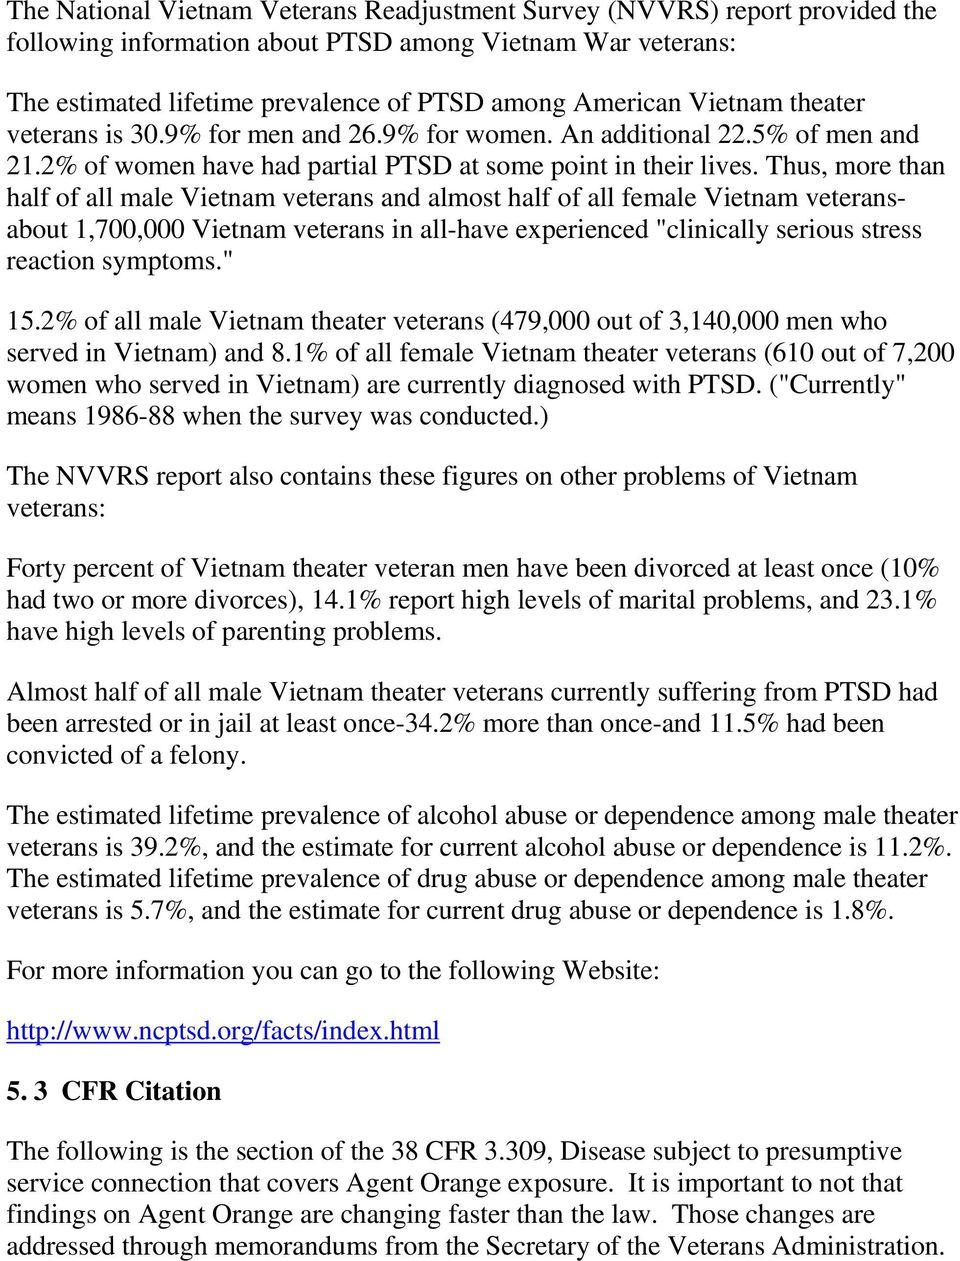 "Thus, more than half of all male Vietnam veterans and almost half of all female Vietnam veteransabout 1,700,000 Vietnam veterans in all-have experienced ""clinically serious stress reaction symptoms."